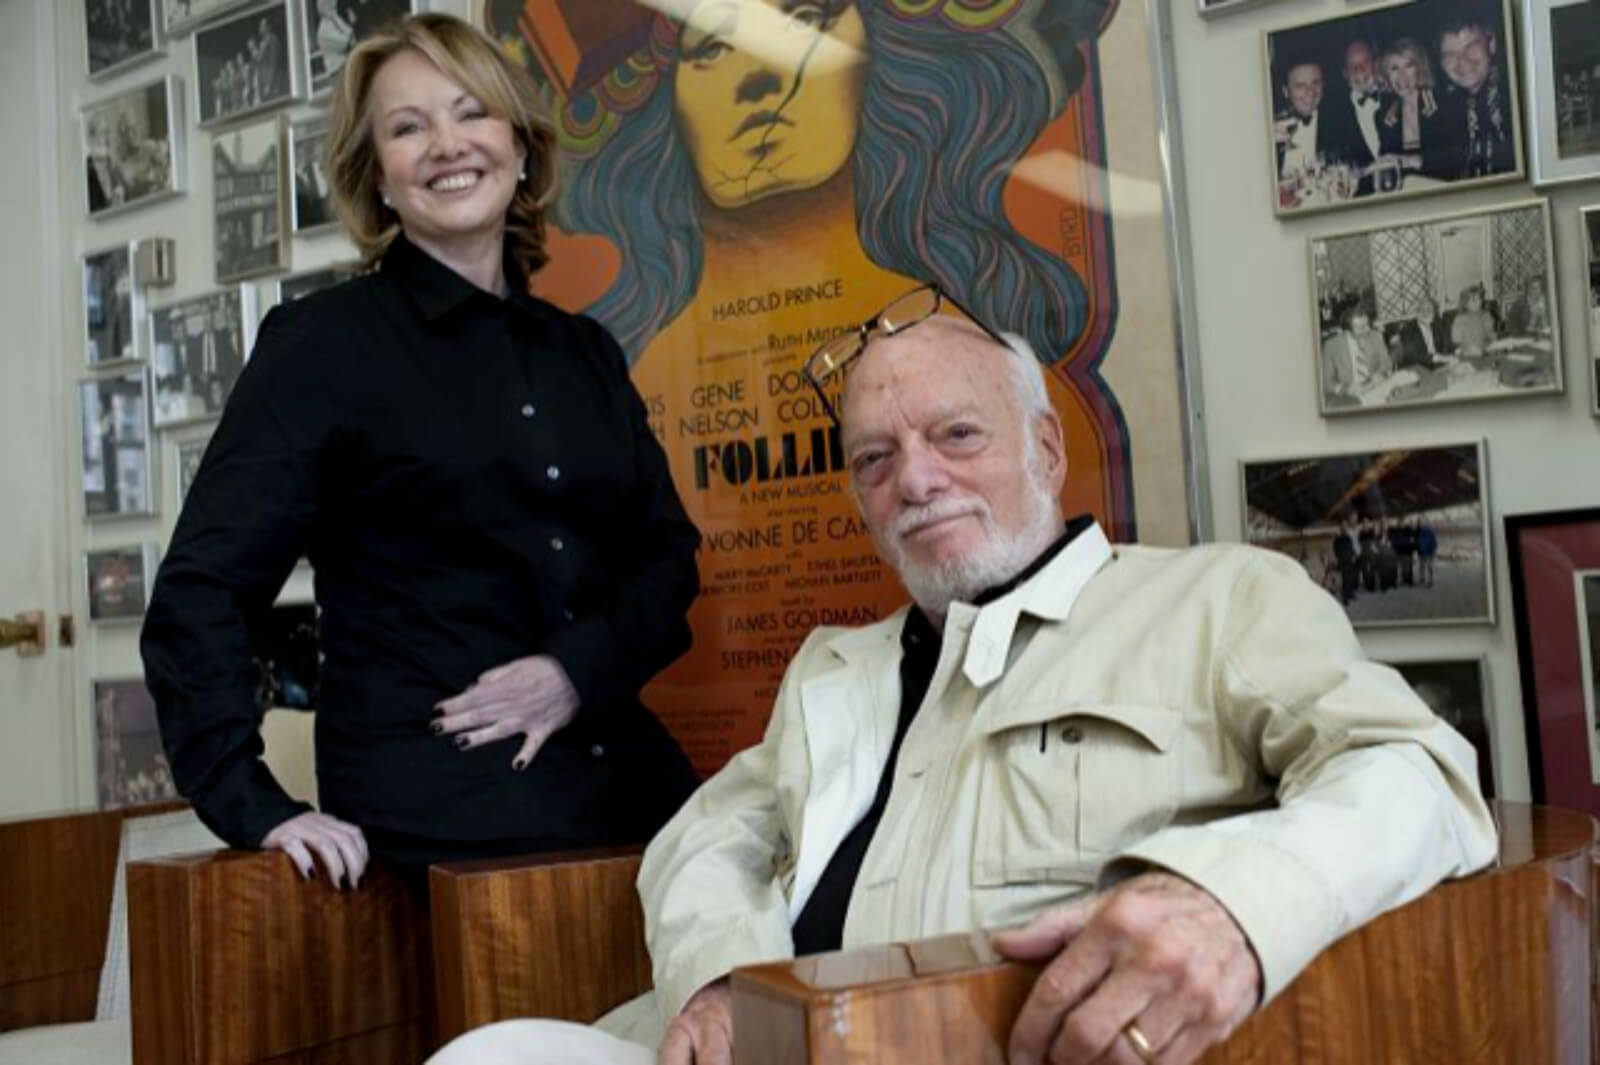 Susan Stroman (in an all black outfit) and Hal Prince (in beige jacket and eyeglasses over his head)